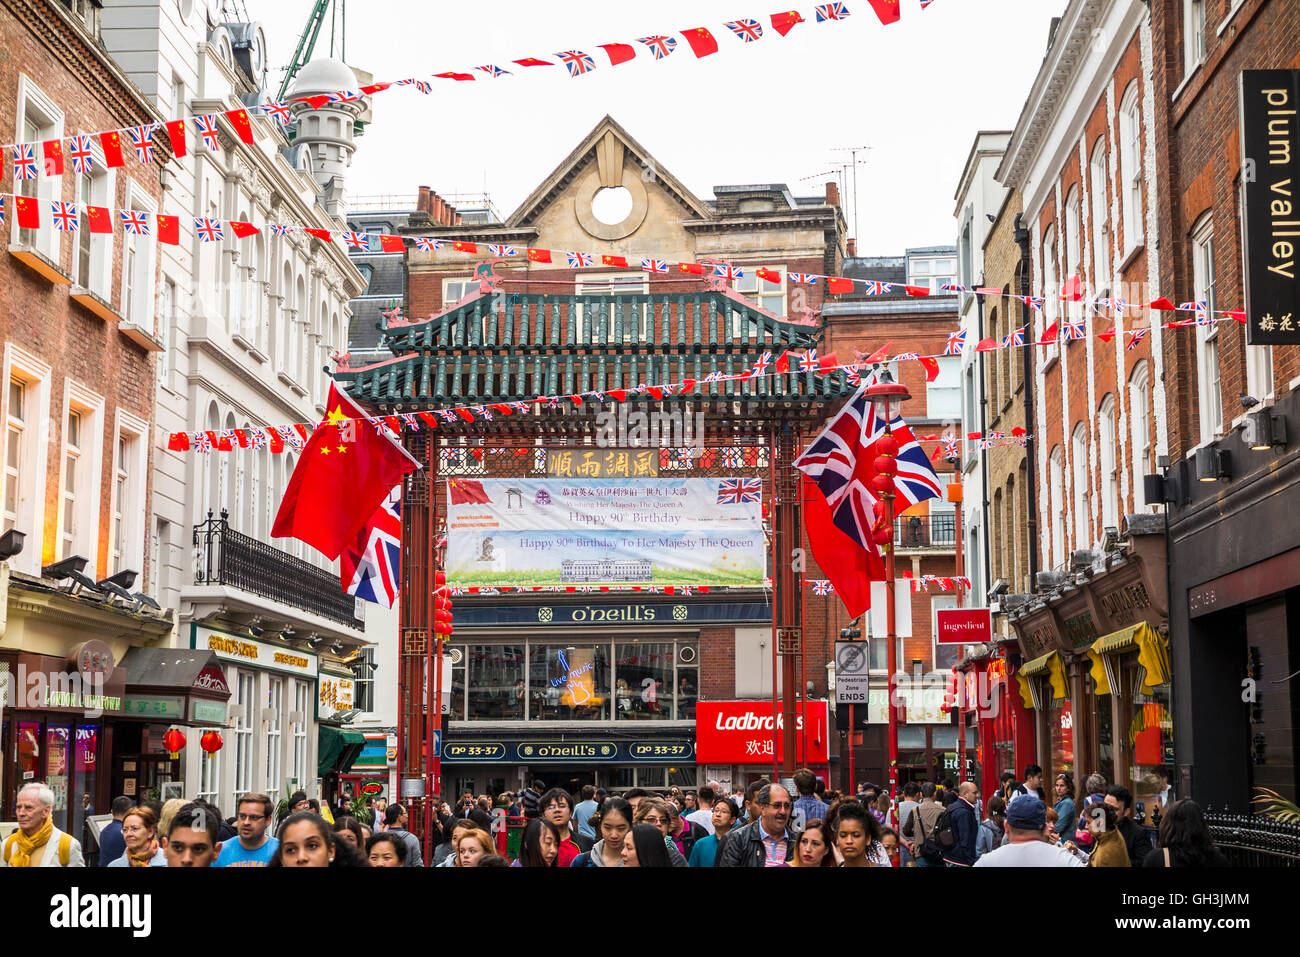 Street scene in Chinatown, West End (Westminster), London, UK with O'Neill's pub in the background - Stock Image